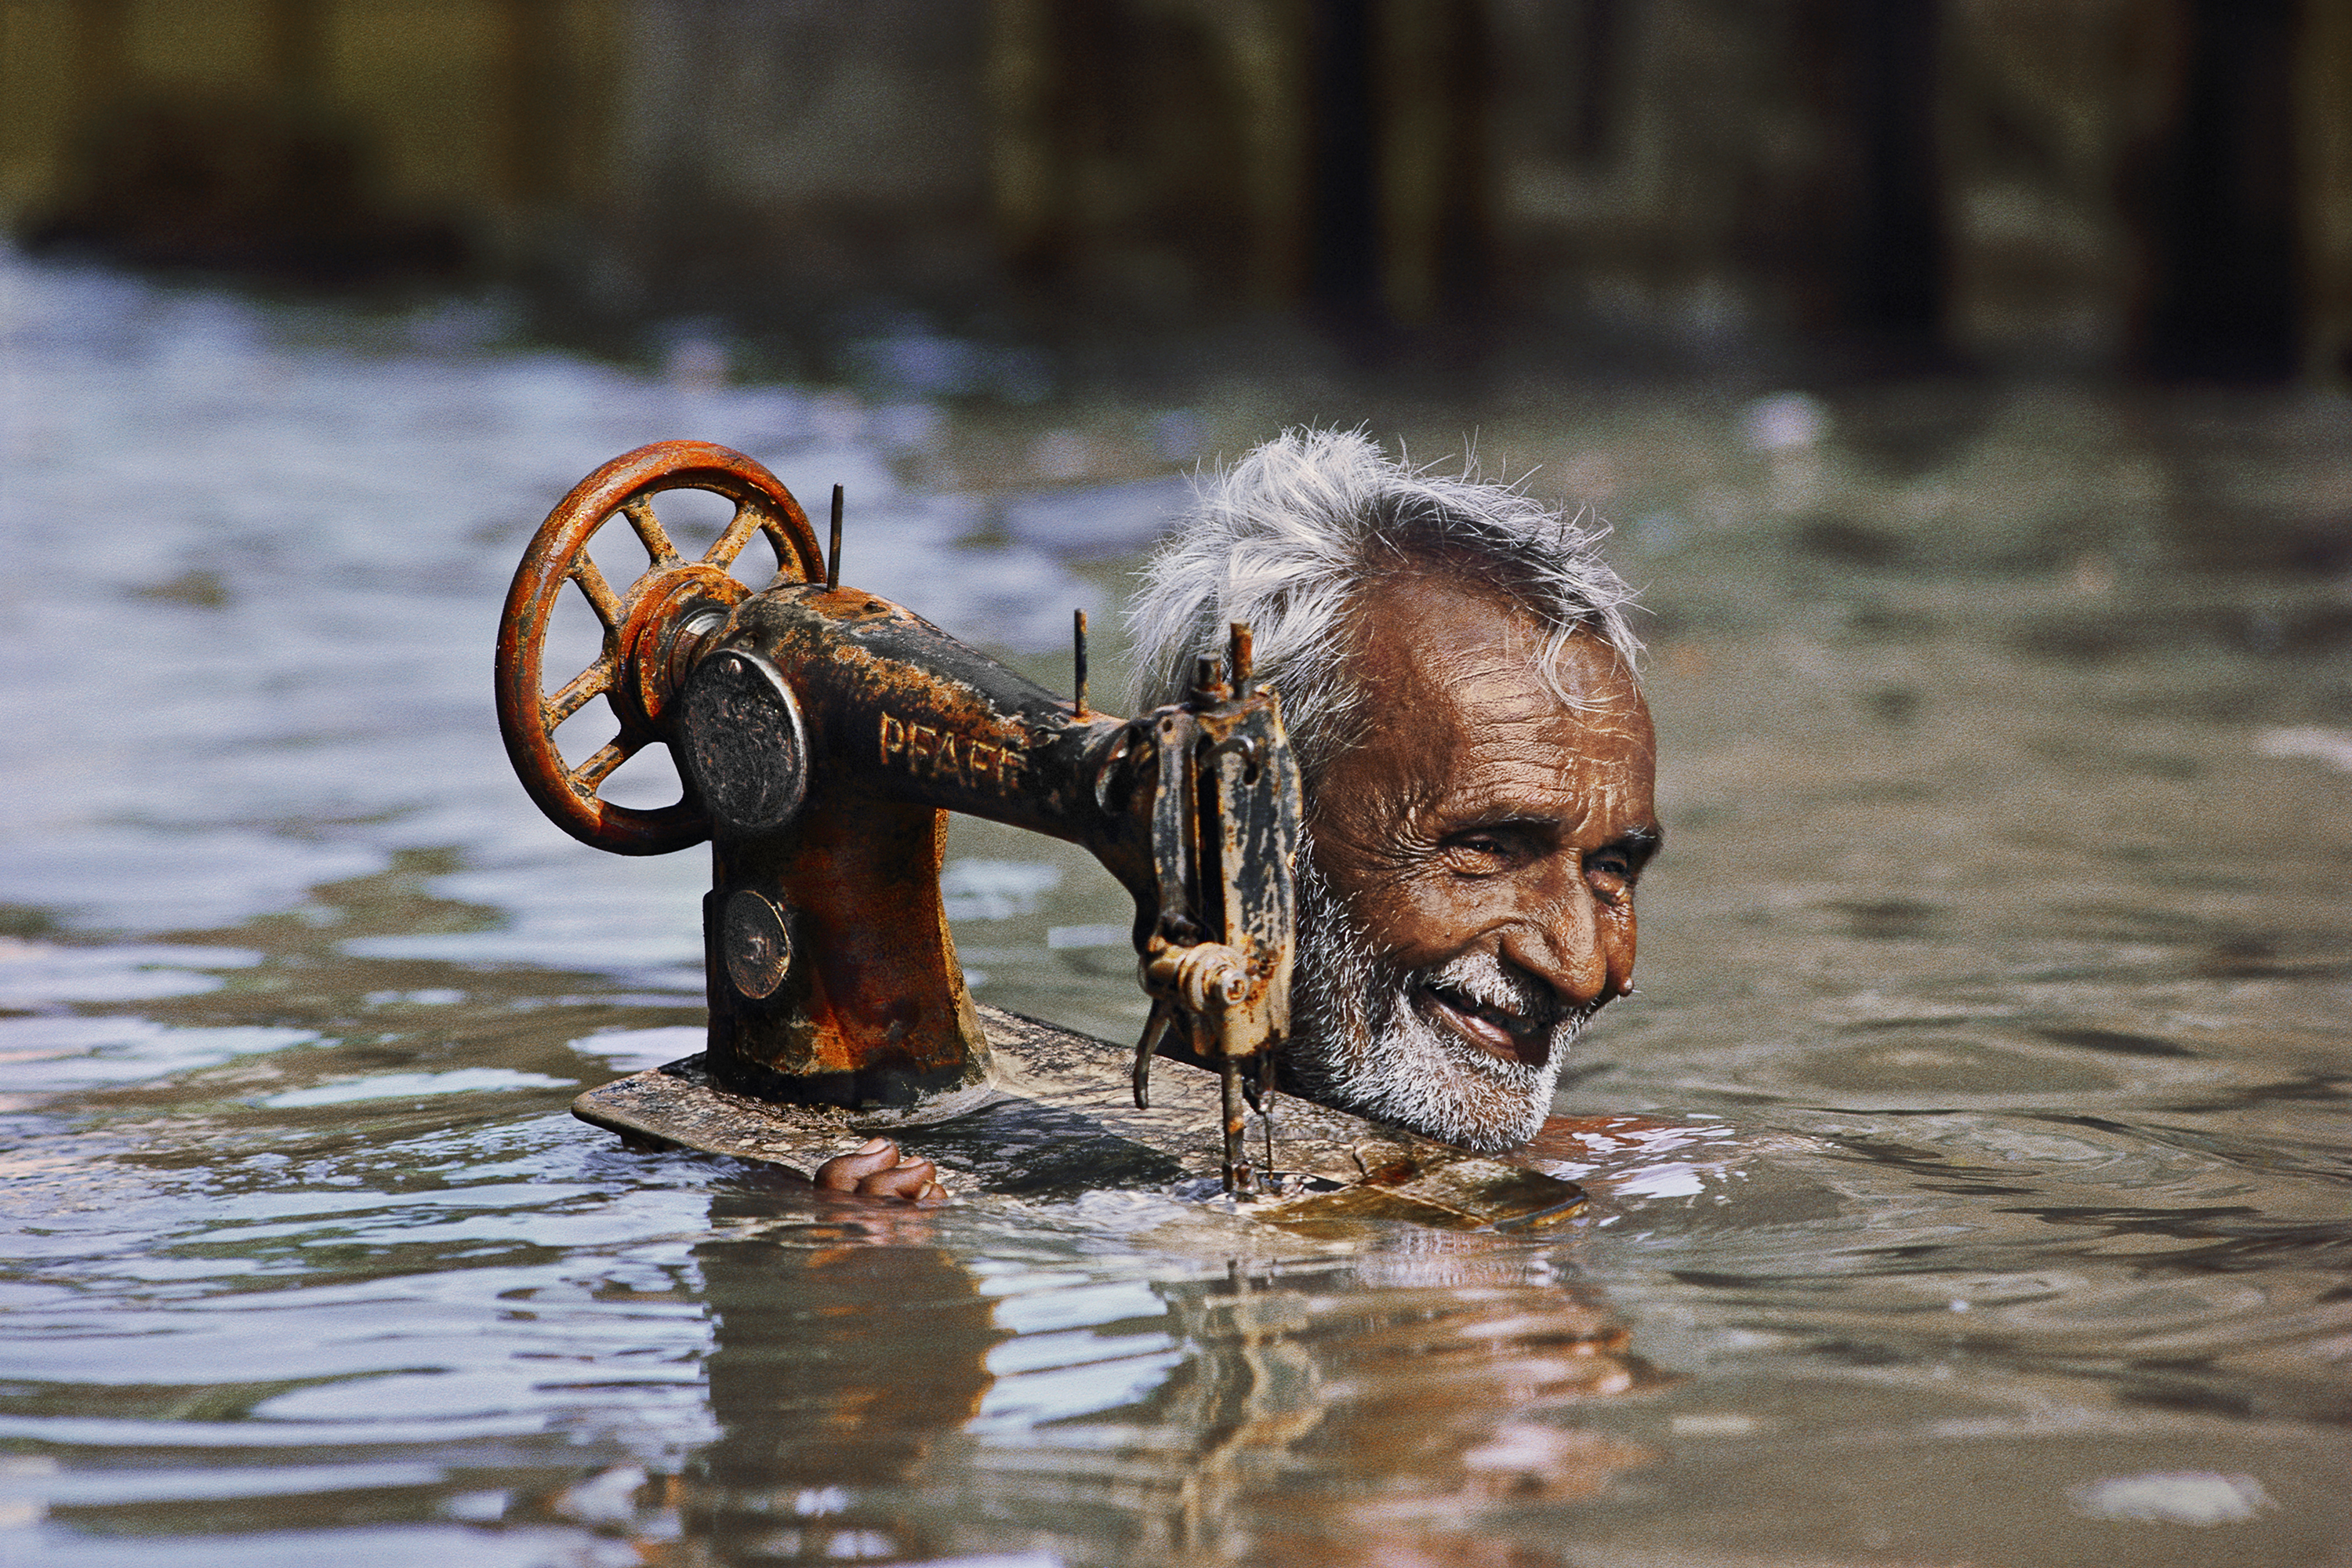 steve_mccurry_india-10004nf_print.jpg